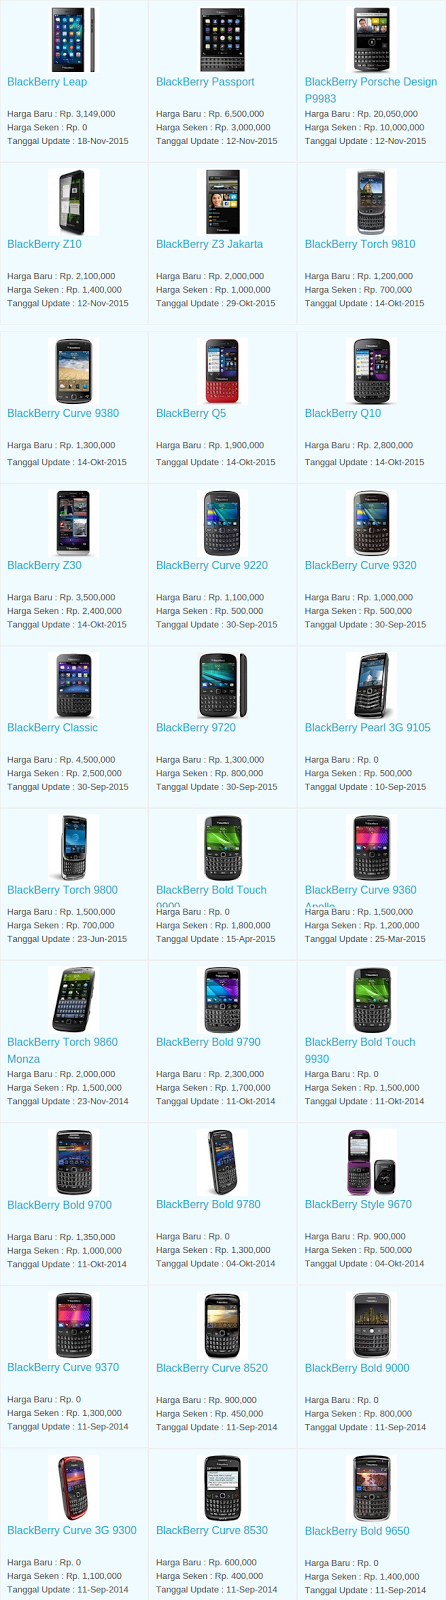 Daftar Harga Hp Blackberry November 2015